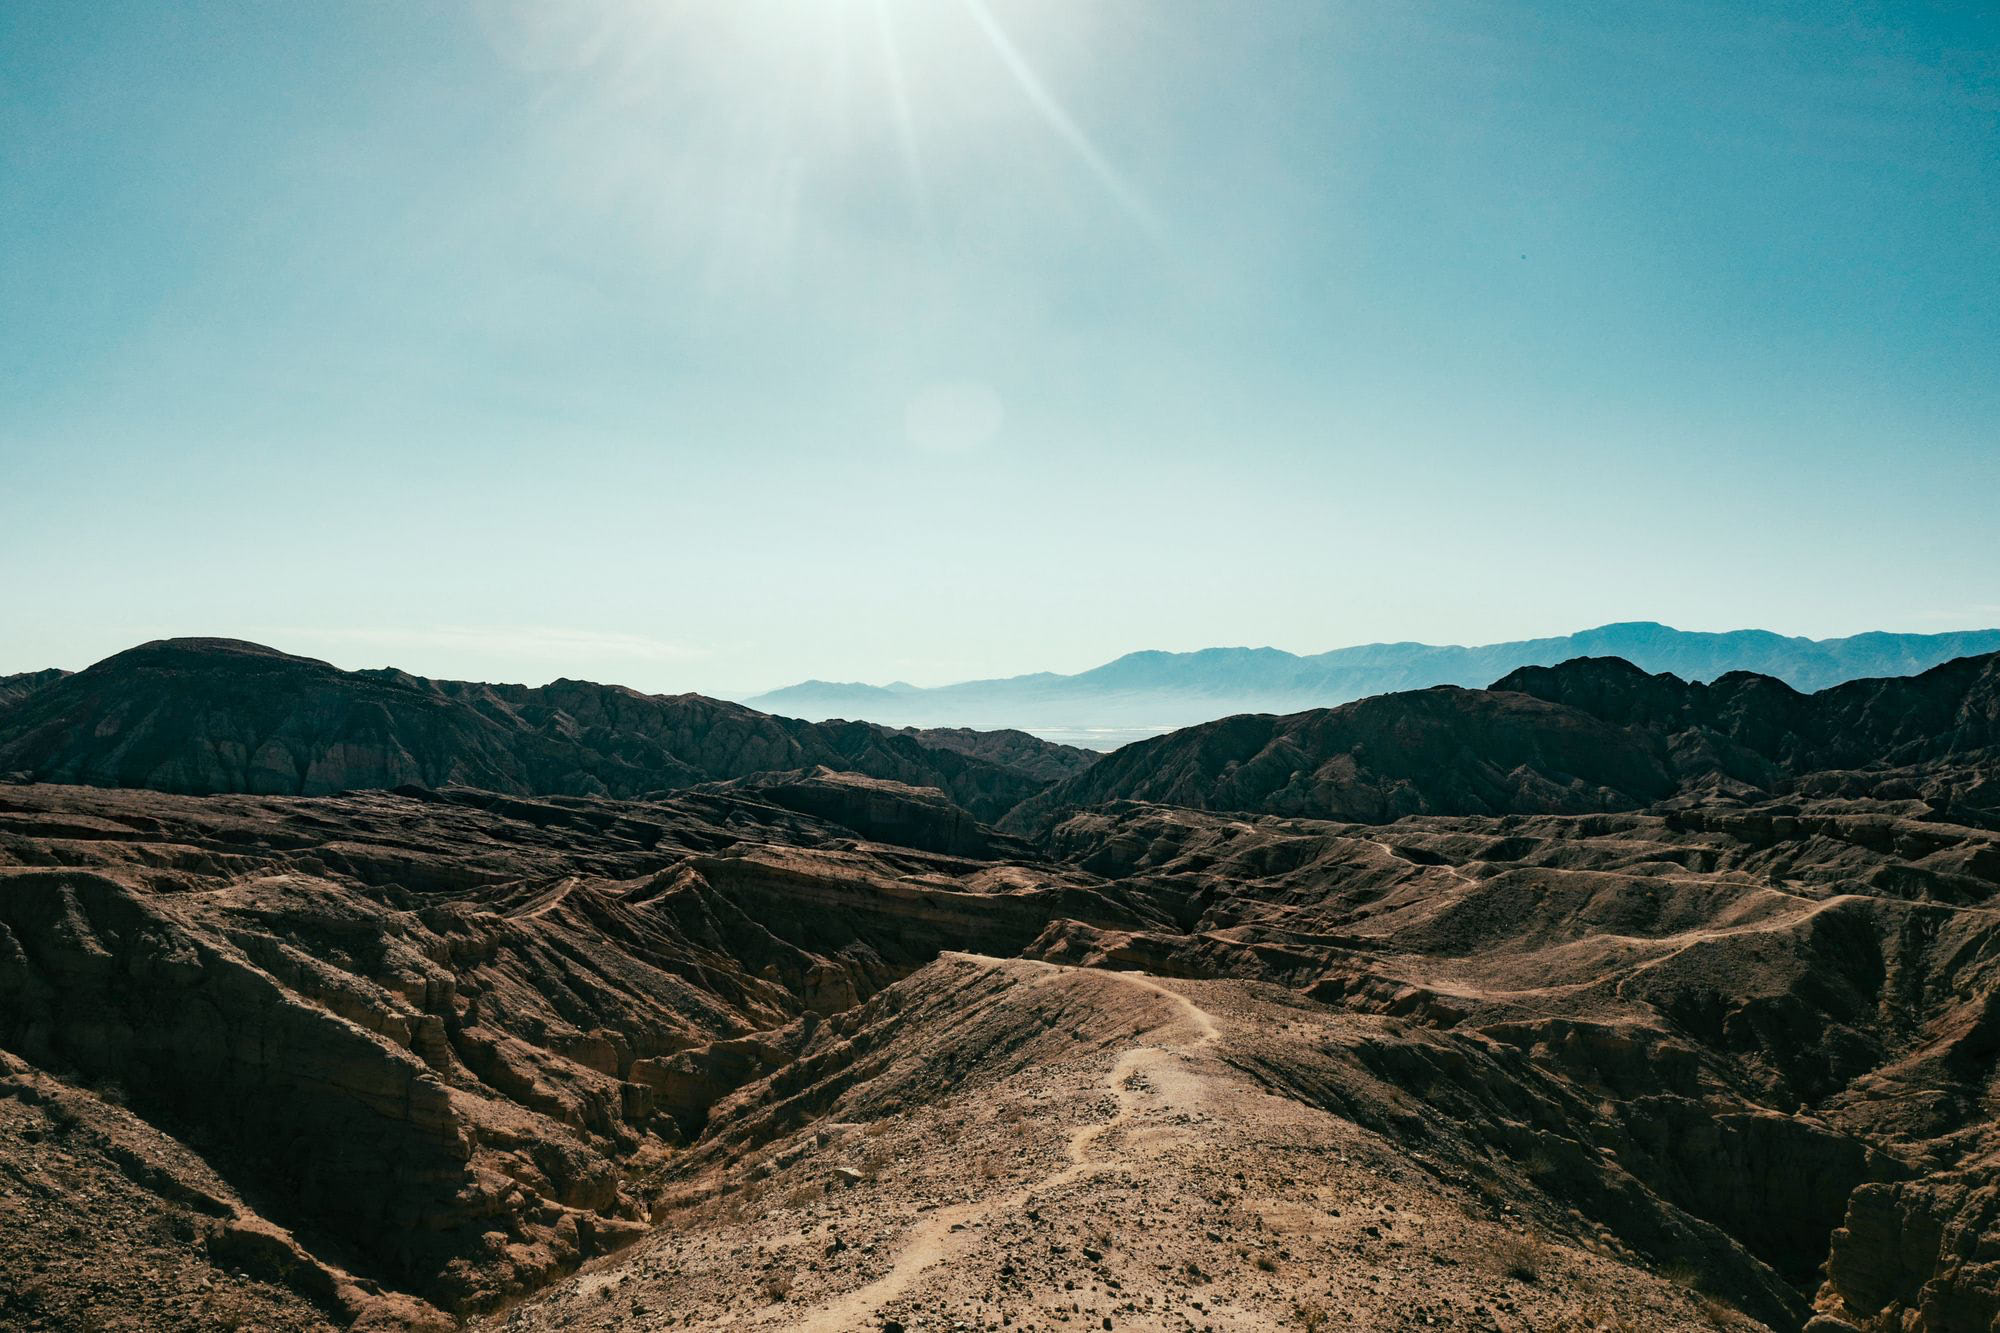 View from the top of the Painted Canyons hike in Mecca, CA.